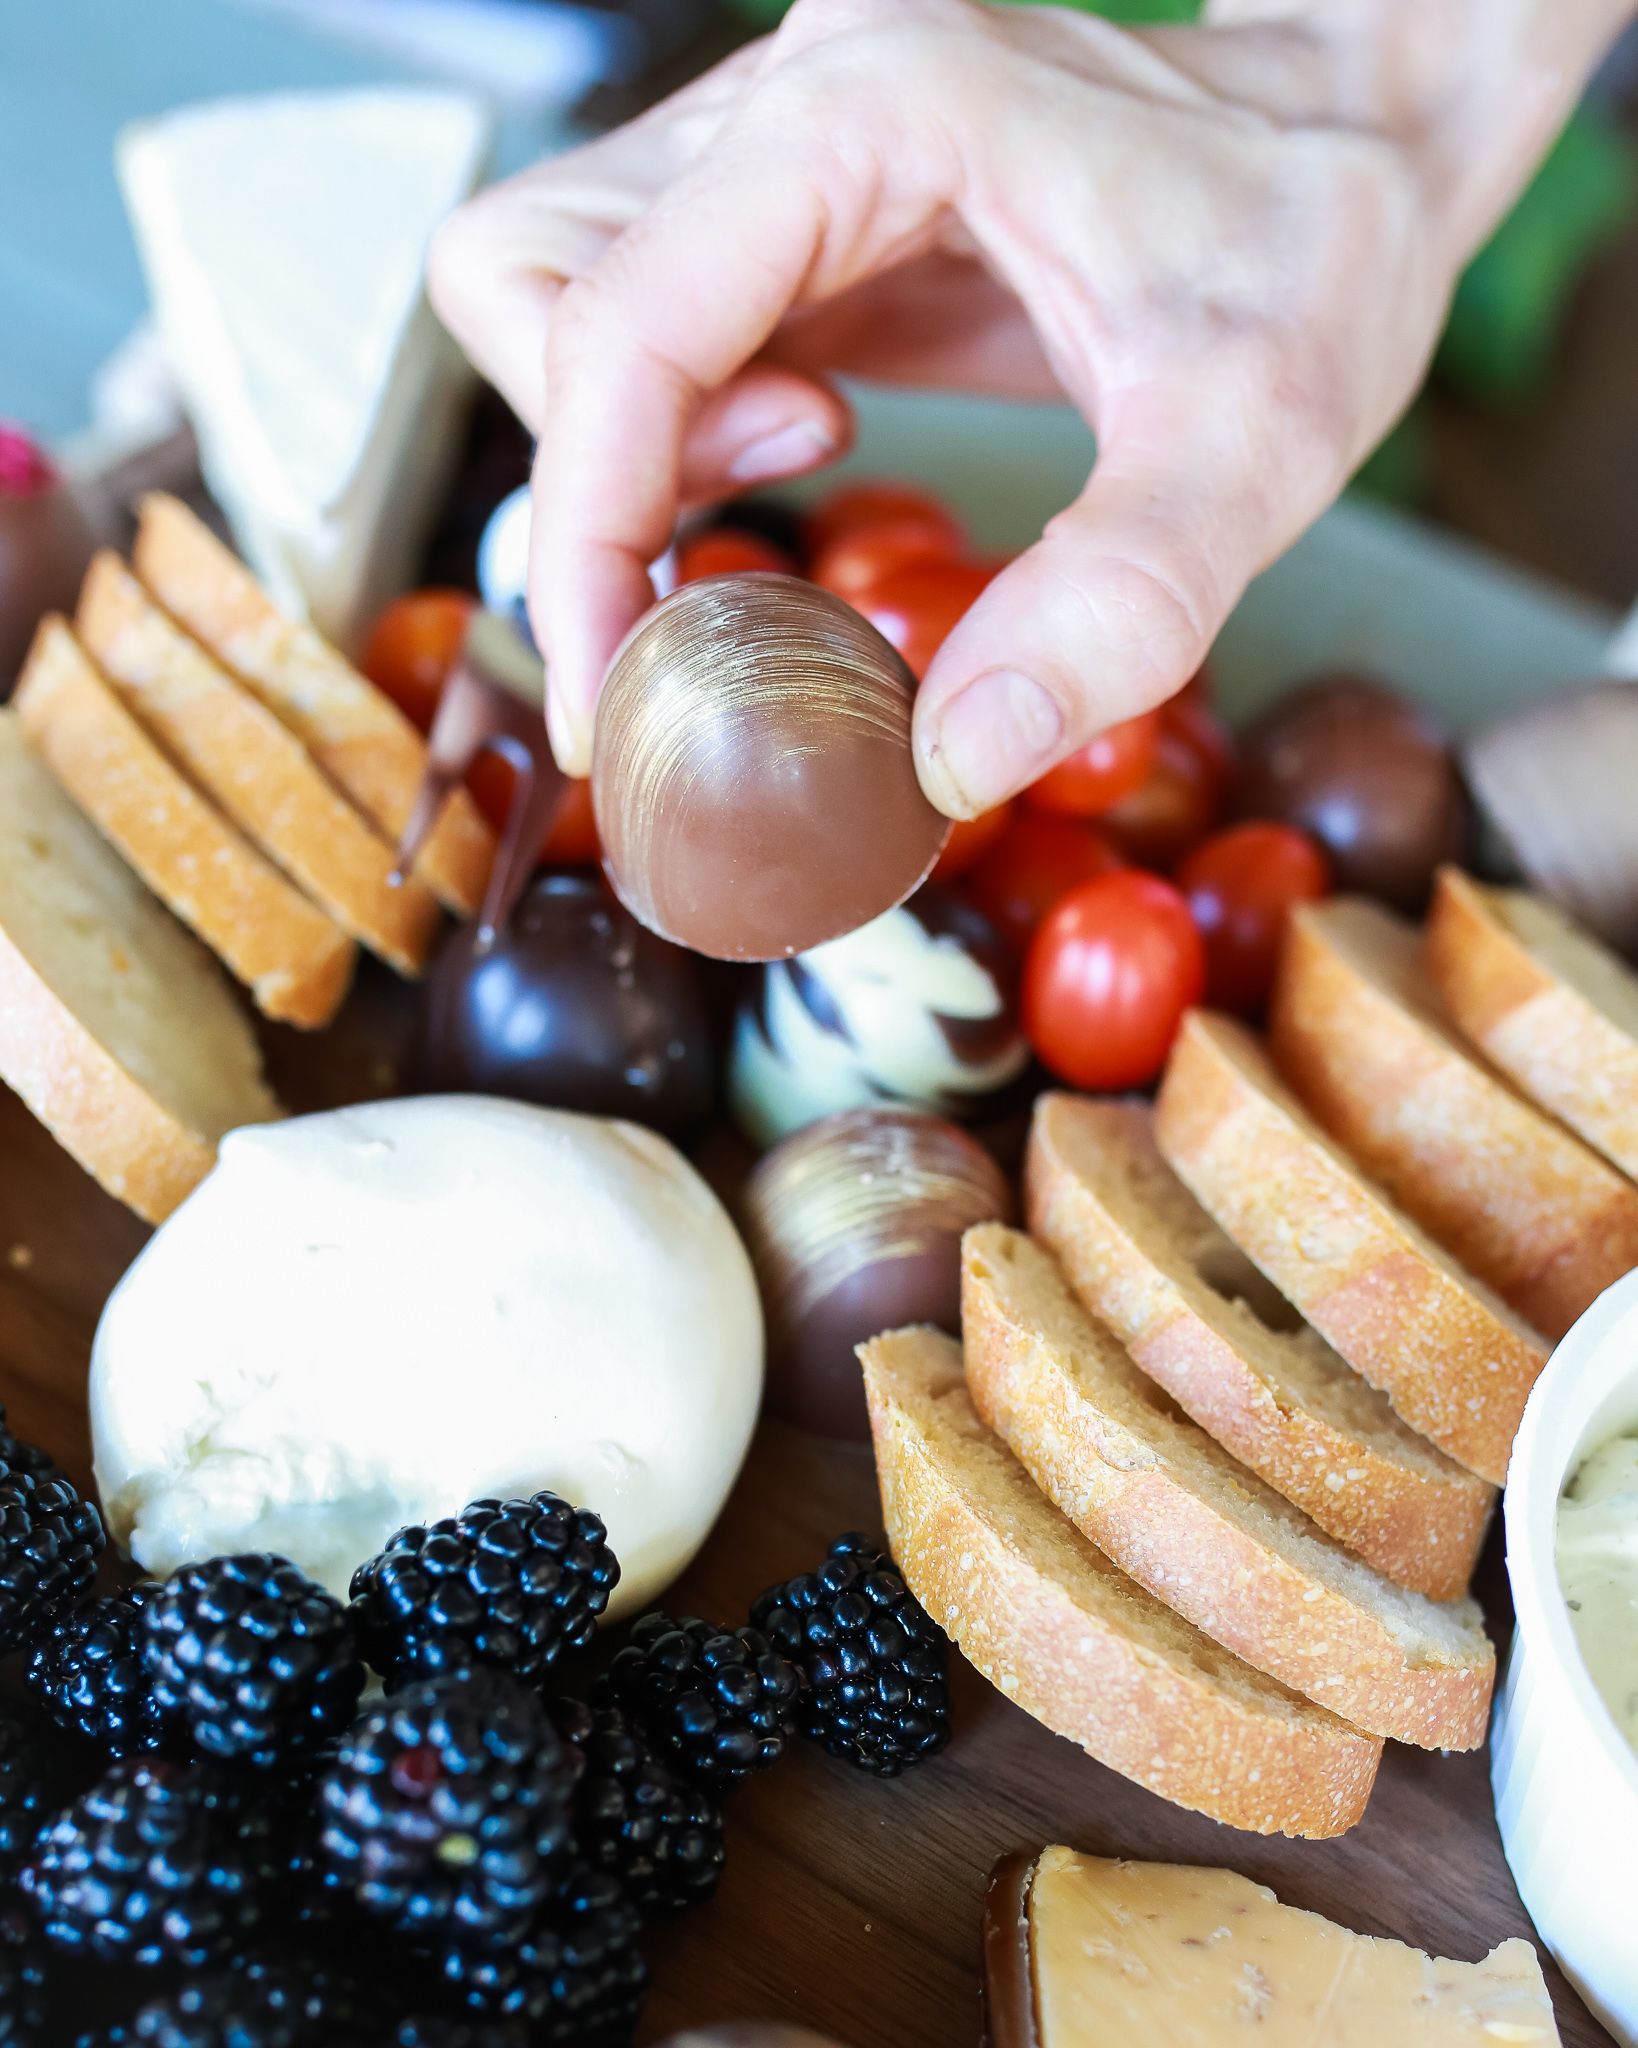 How to build a chocolate and cheese charcutierie